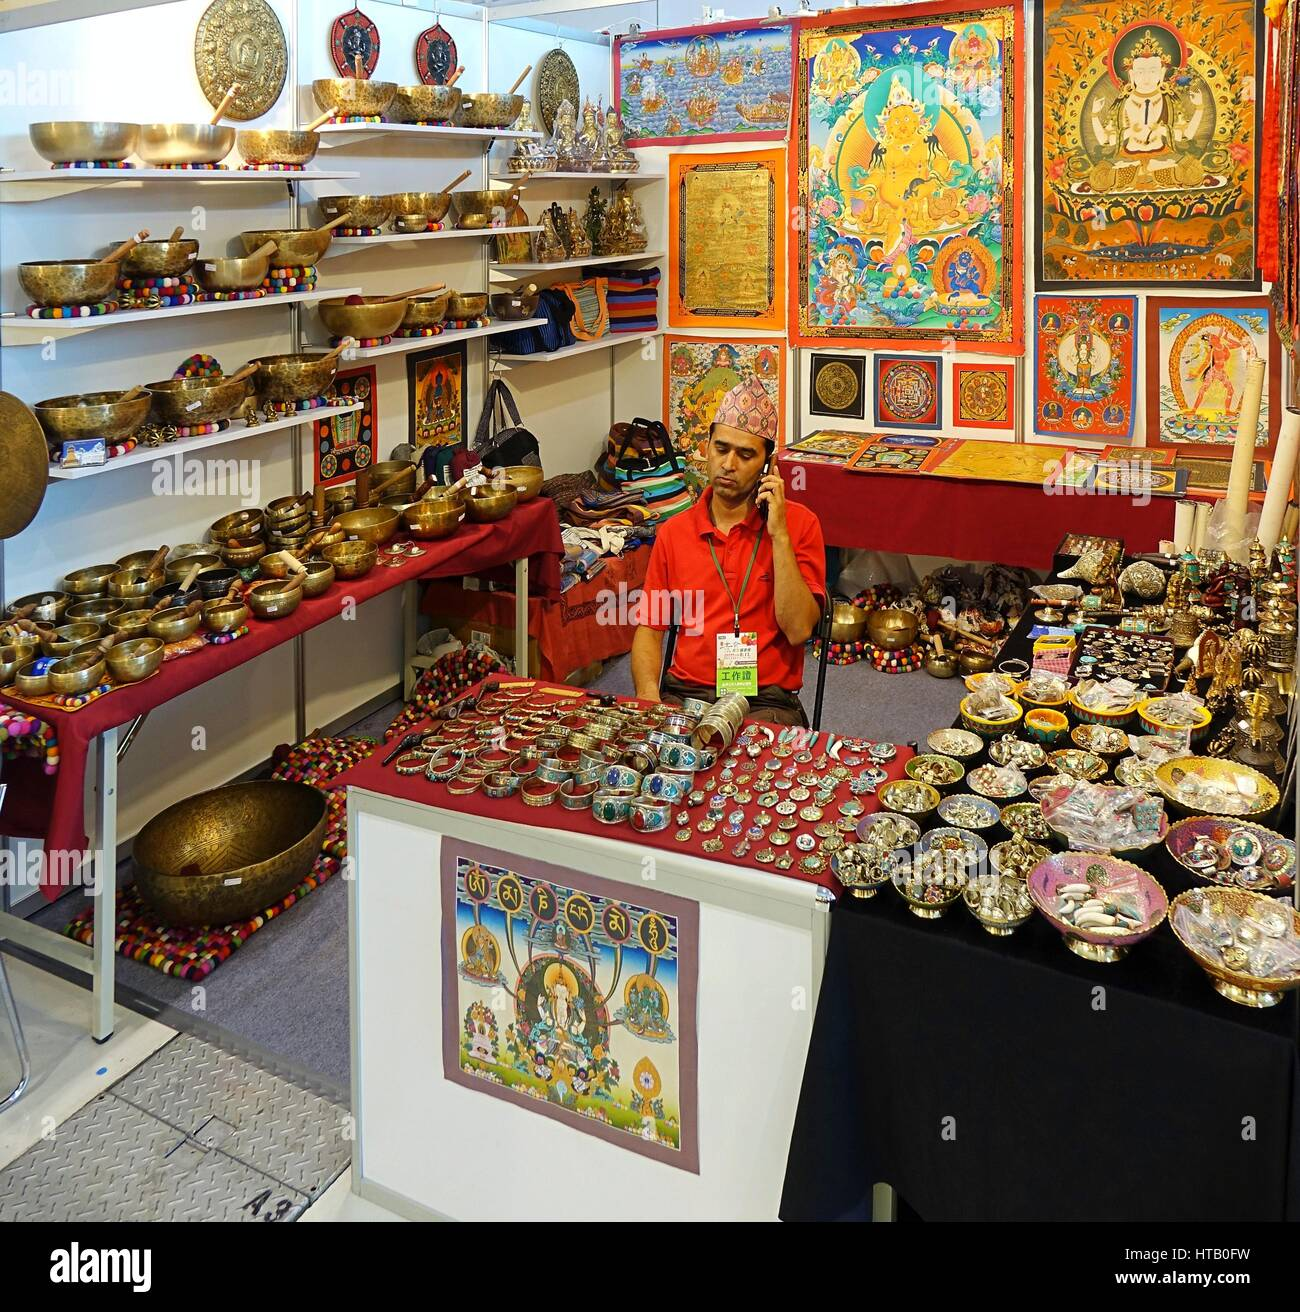 KAOHSIUNG, TAIWAN -- OCTOBER 8, 2015: A stall sells Tibetan religious artifacts at a local trade fair. - Stock Image